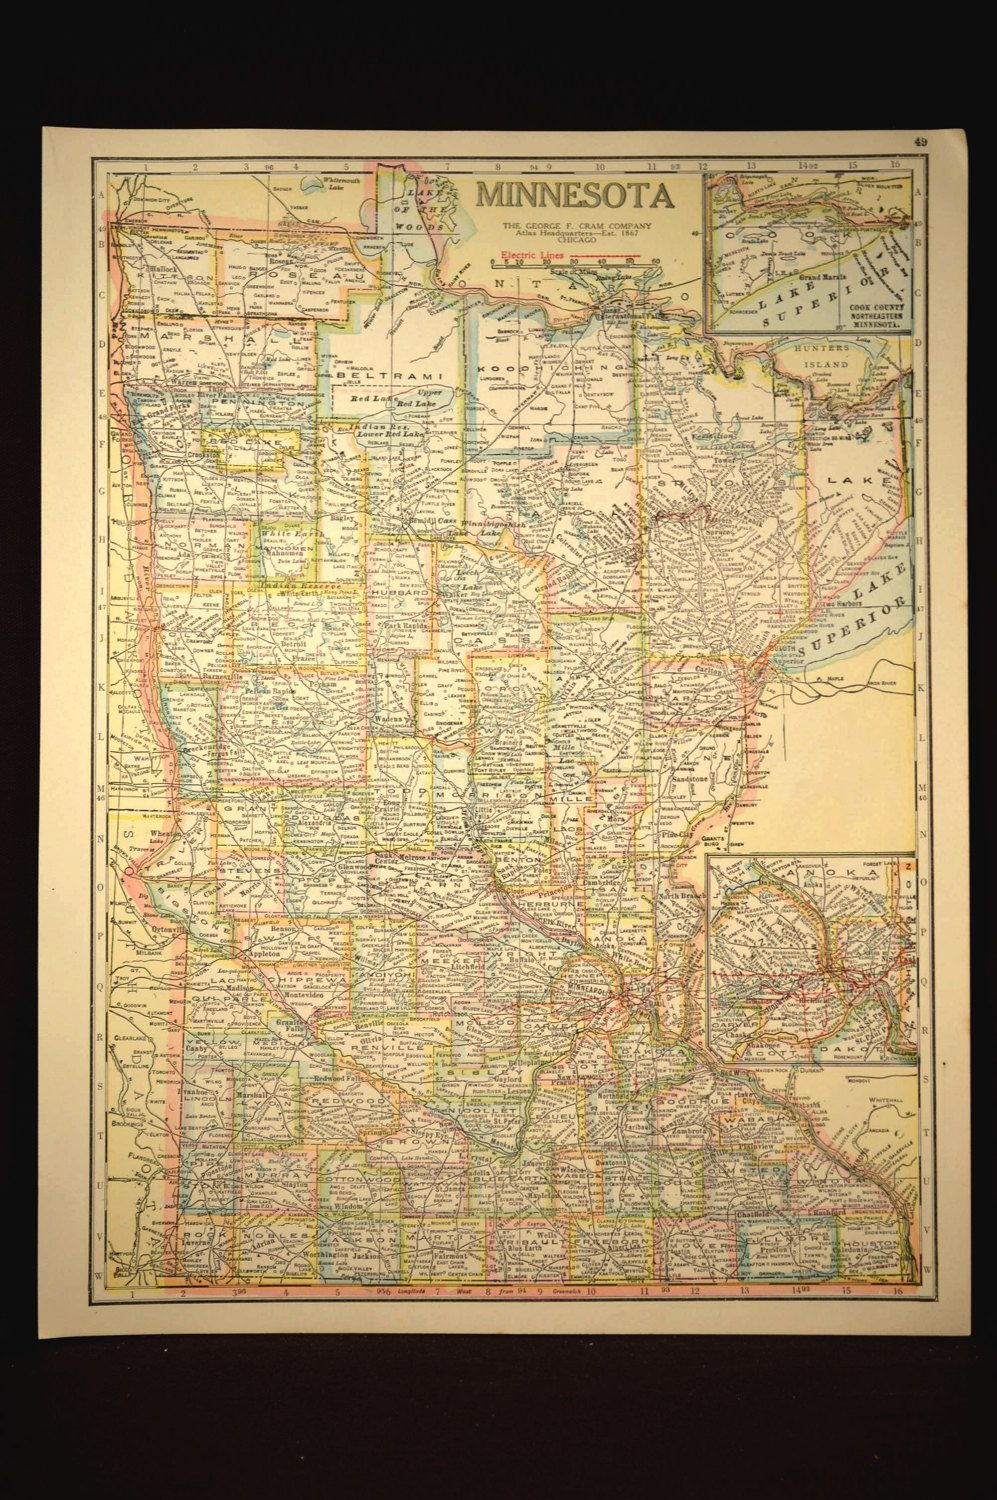 TWO SIDED Antique Road Map Minnesota Map Original Highway Roadway ...